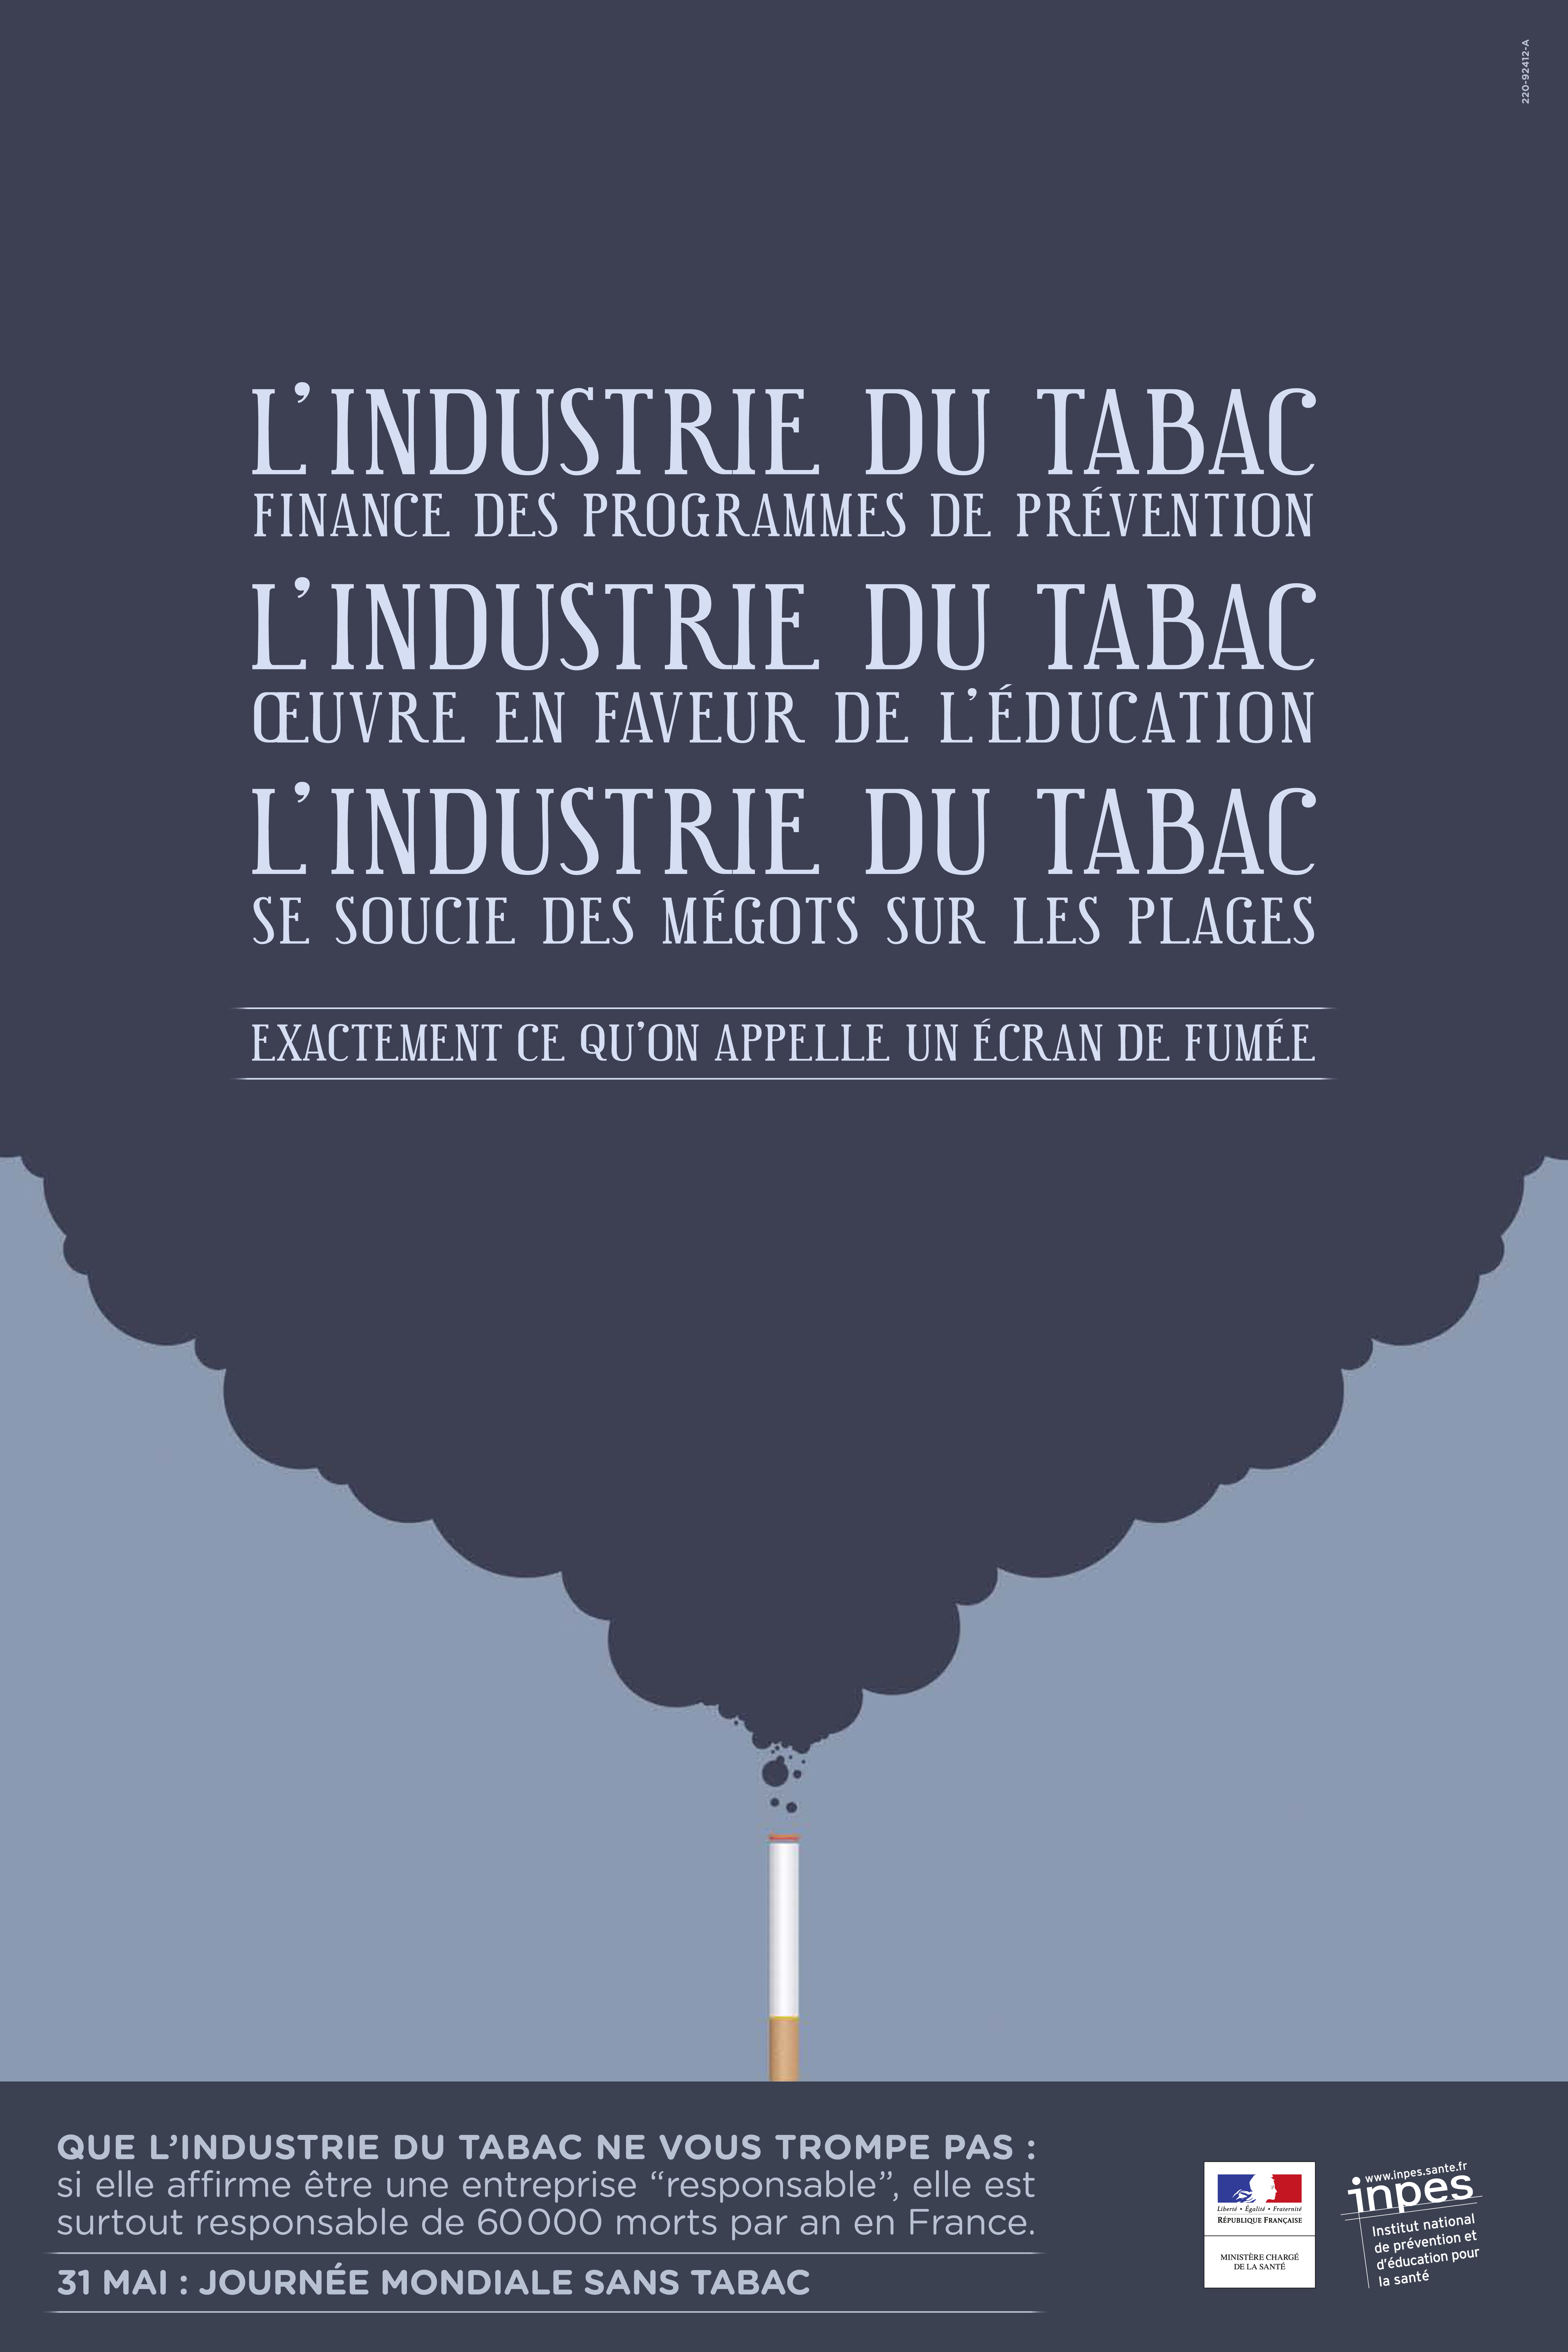 Campagne INPES 2012 - Industrie du tabac - www.tabac-info-service.fr